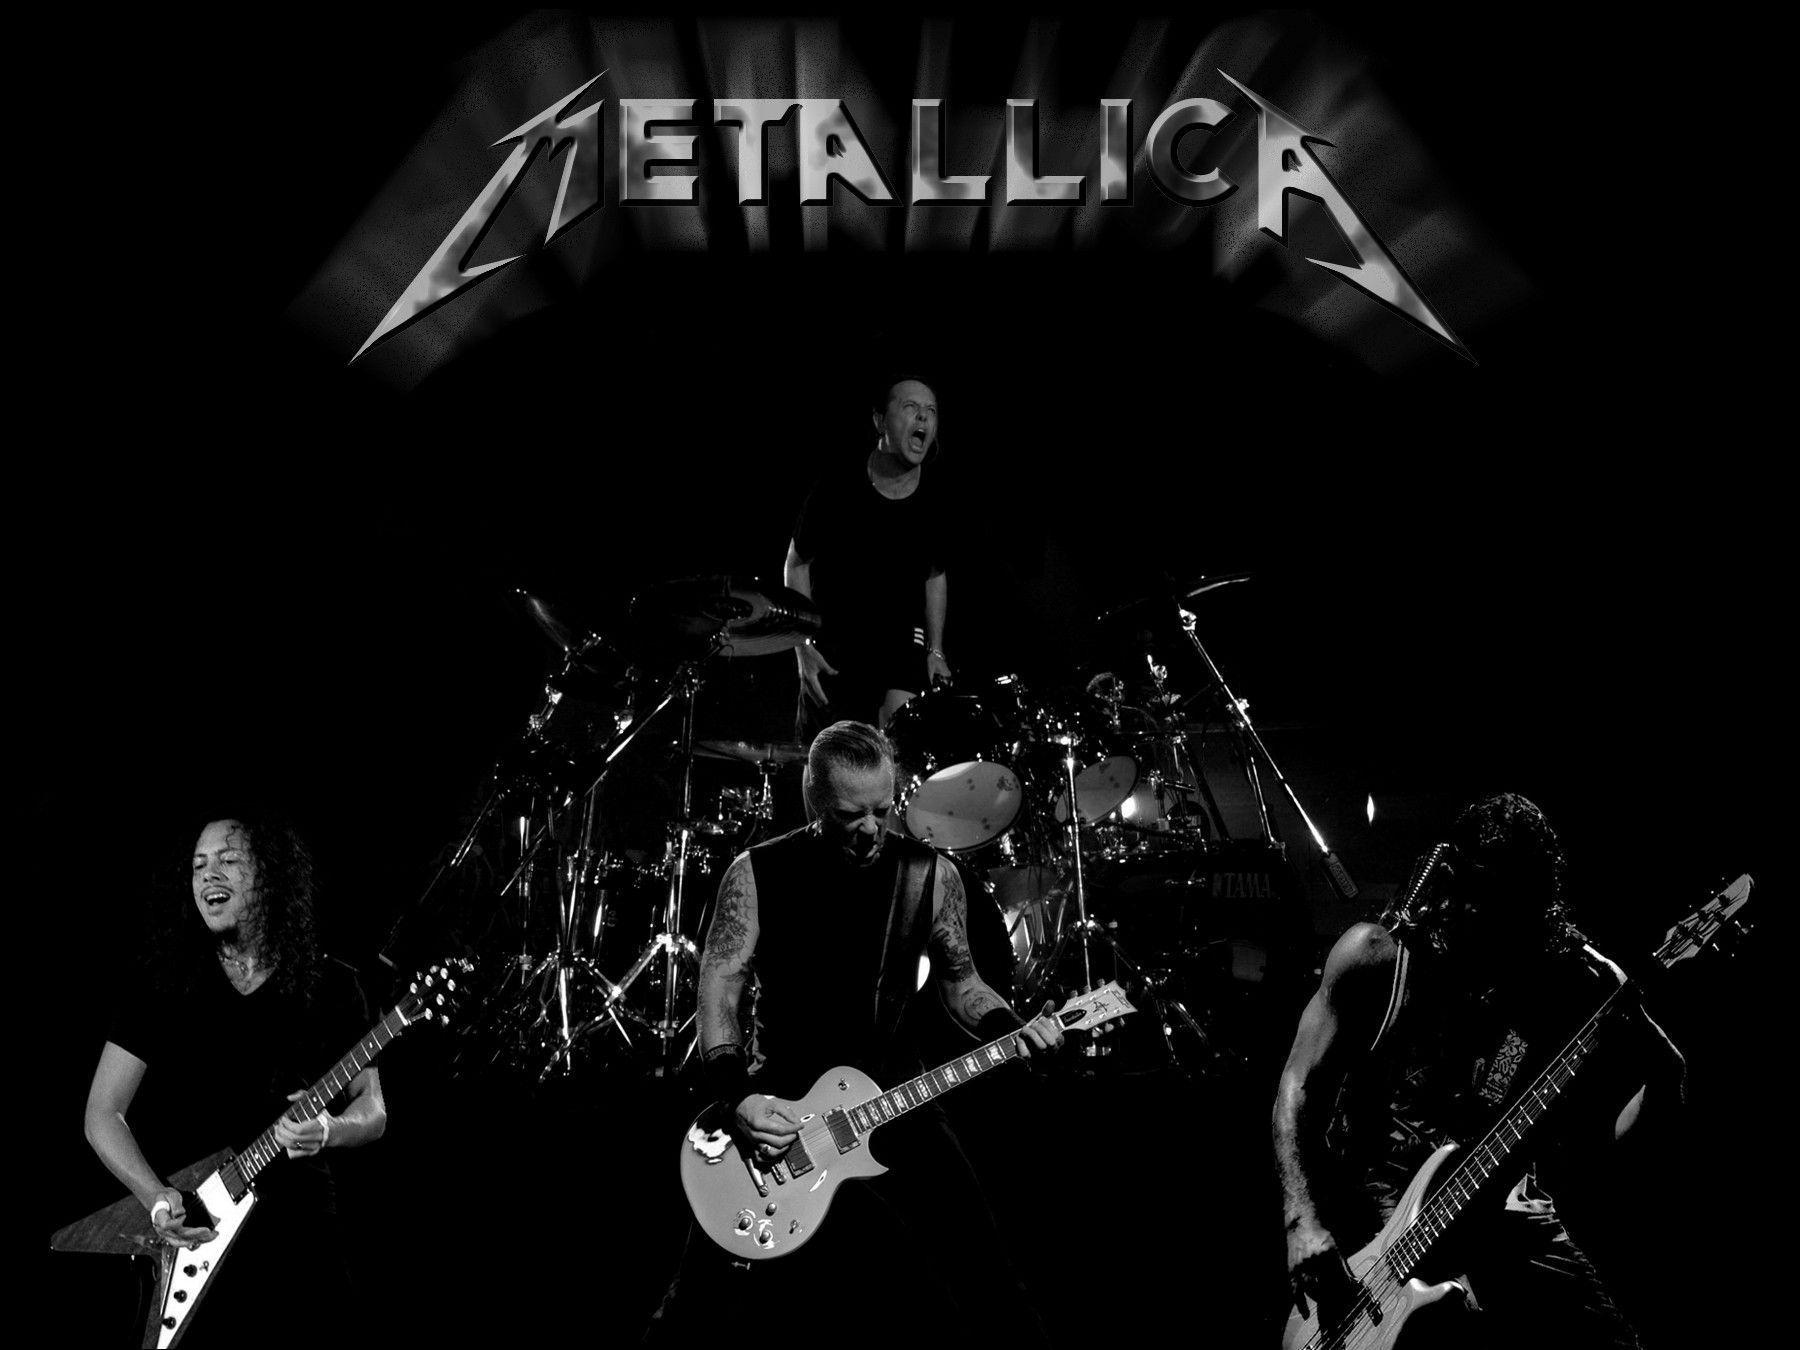 Metallica Computer Wallpapers, Desktop Backgrounds 1800x1350 Id